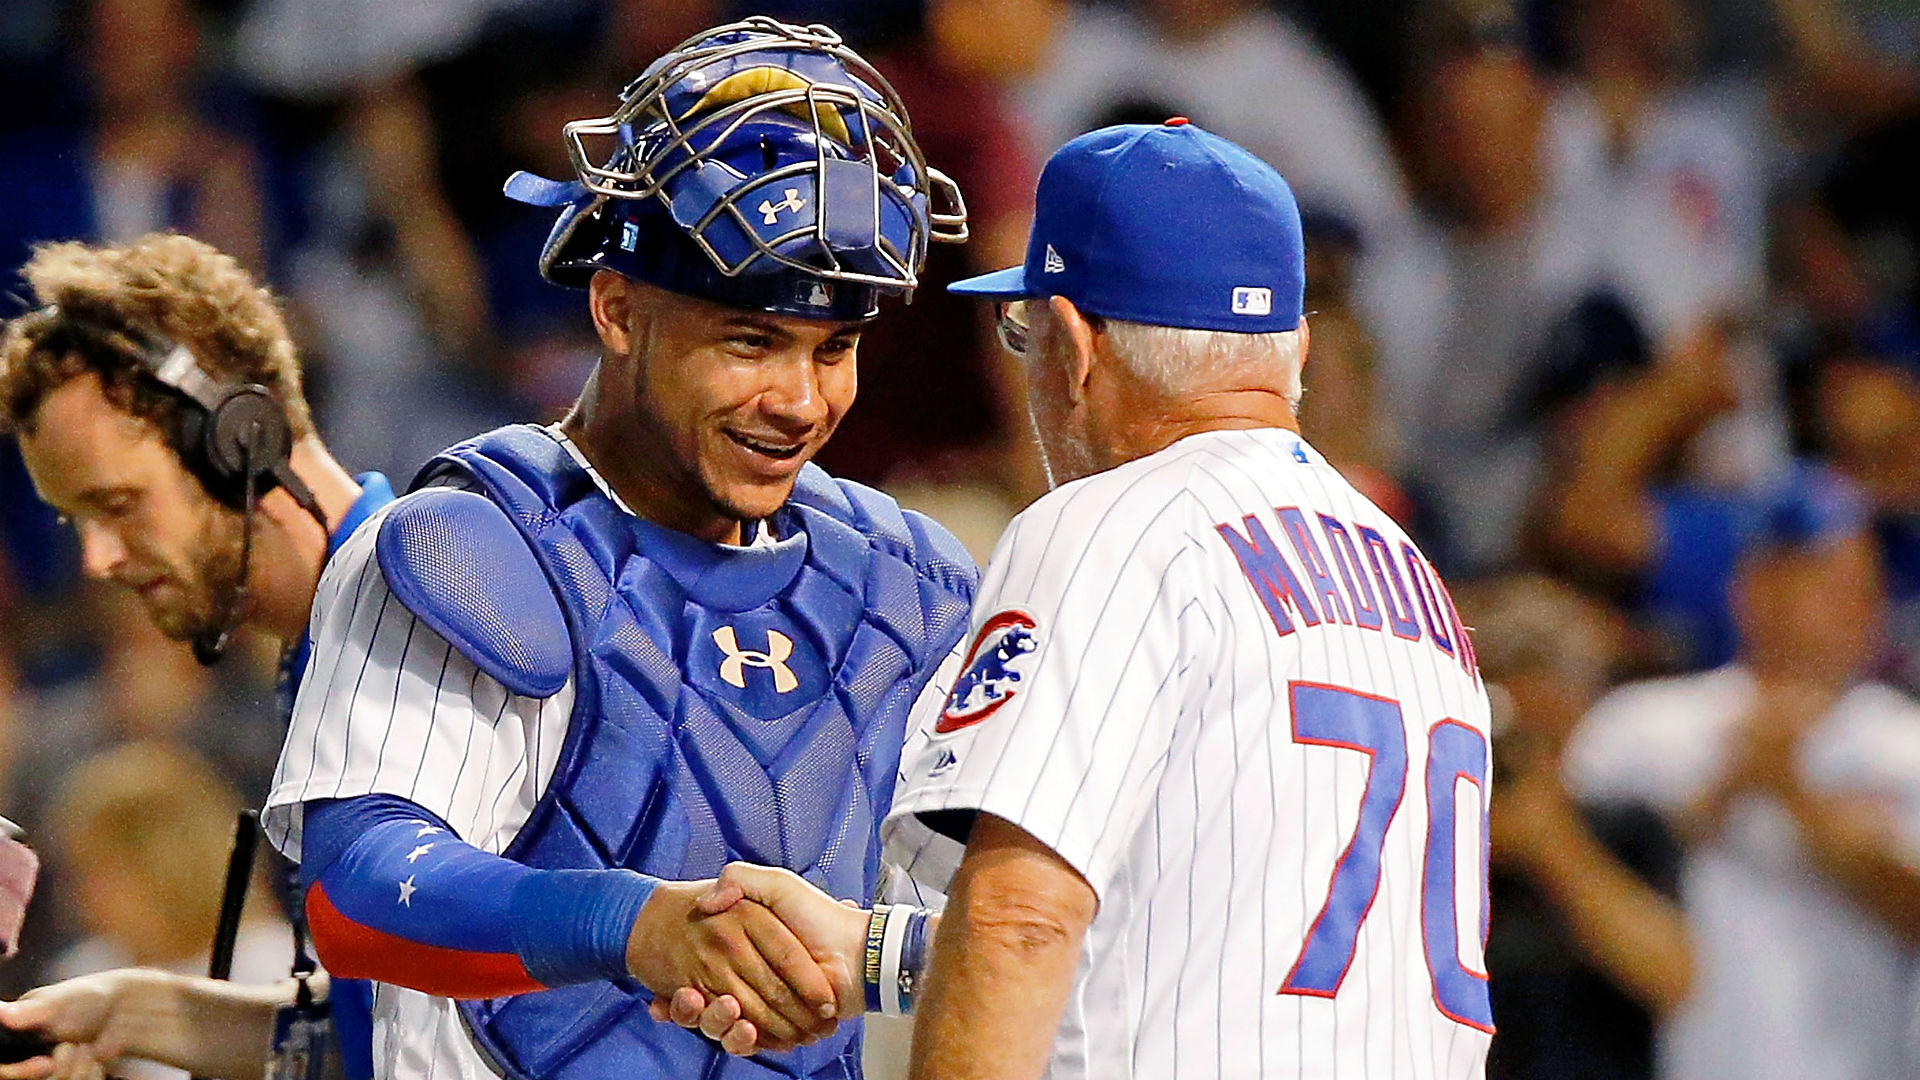 Willson-contreras-joe-maddon-cubs-getty-ftr-072917_zs8ga261trtp1cdyl191pi3w0